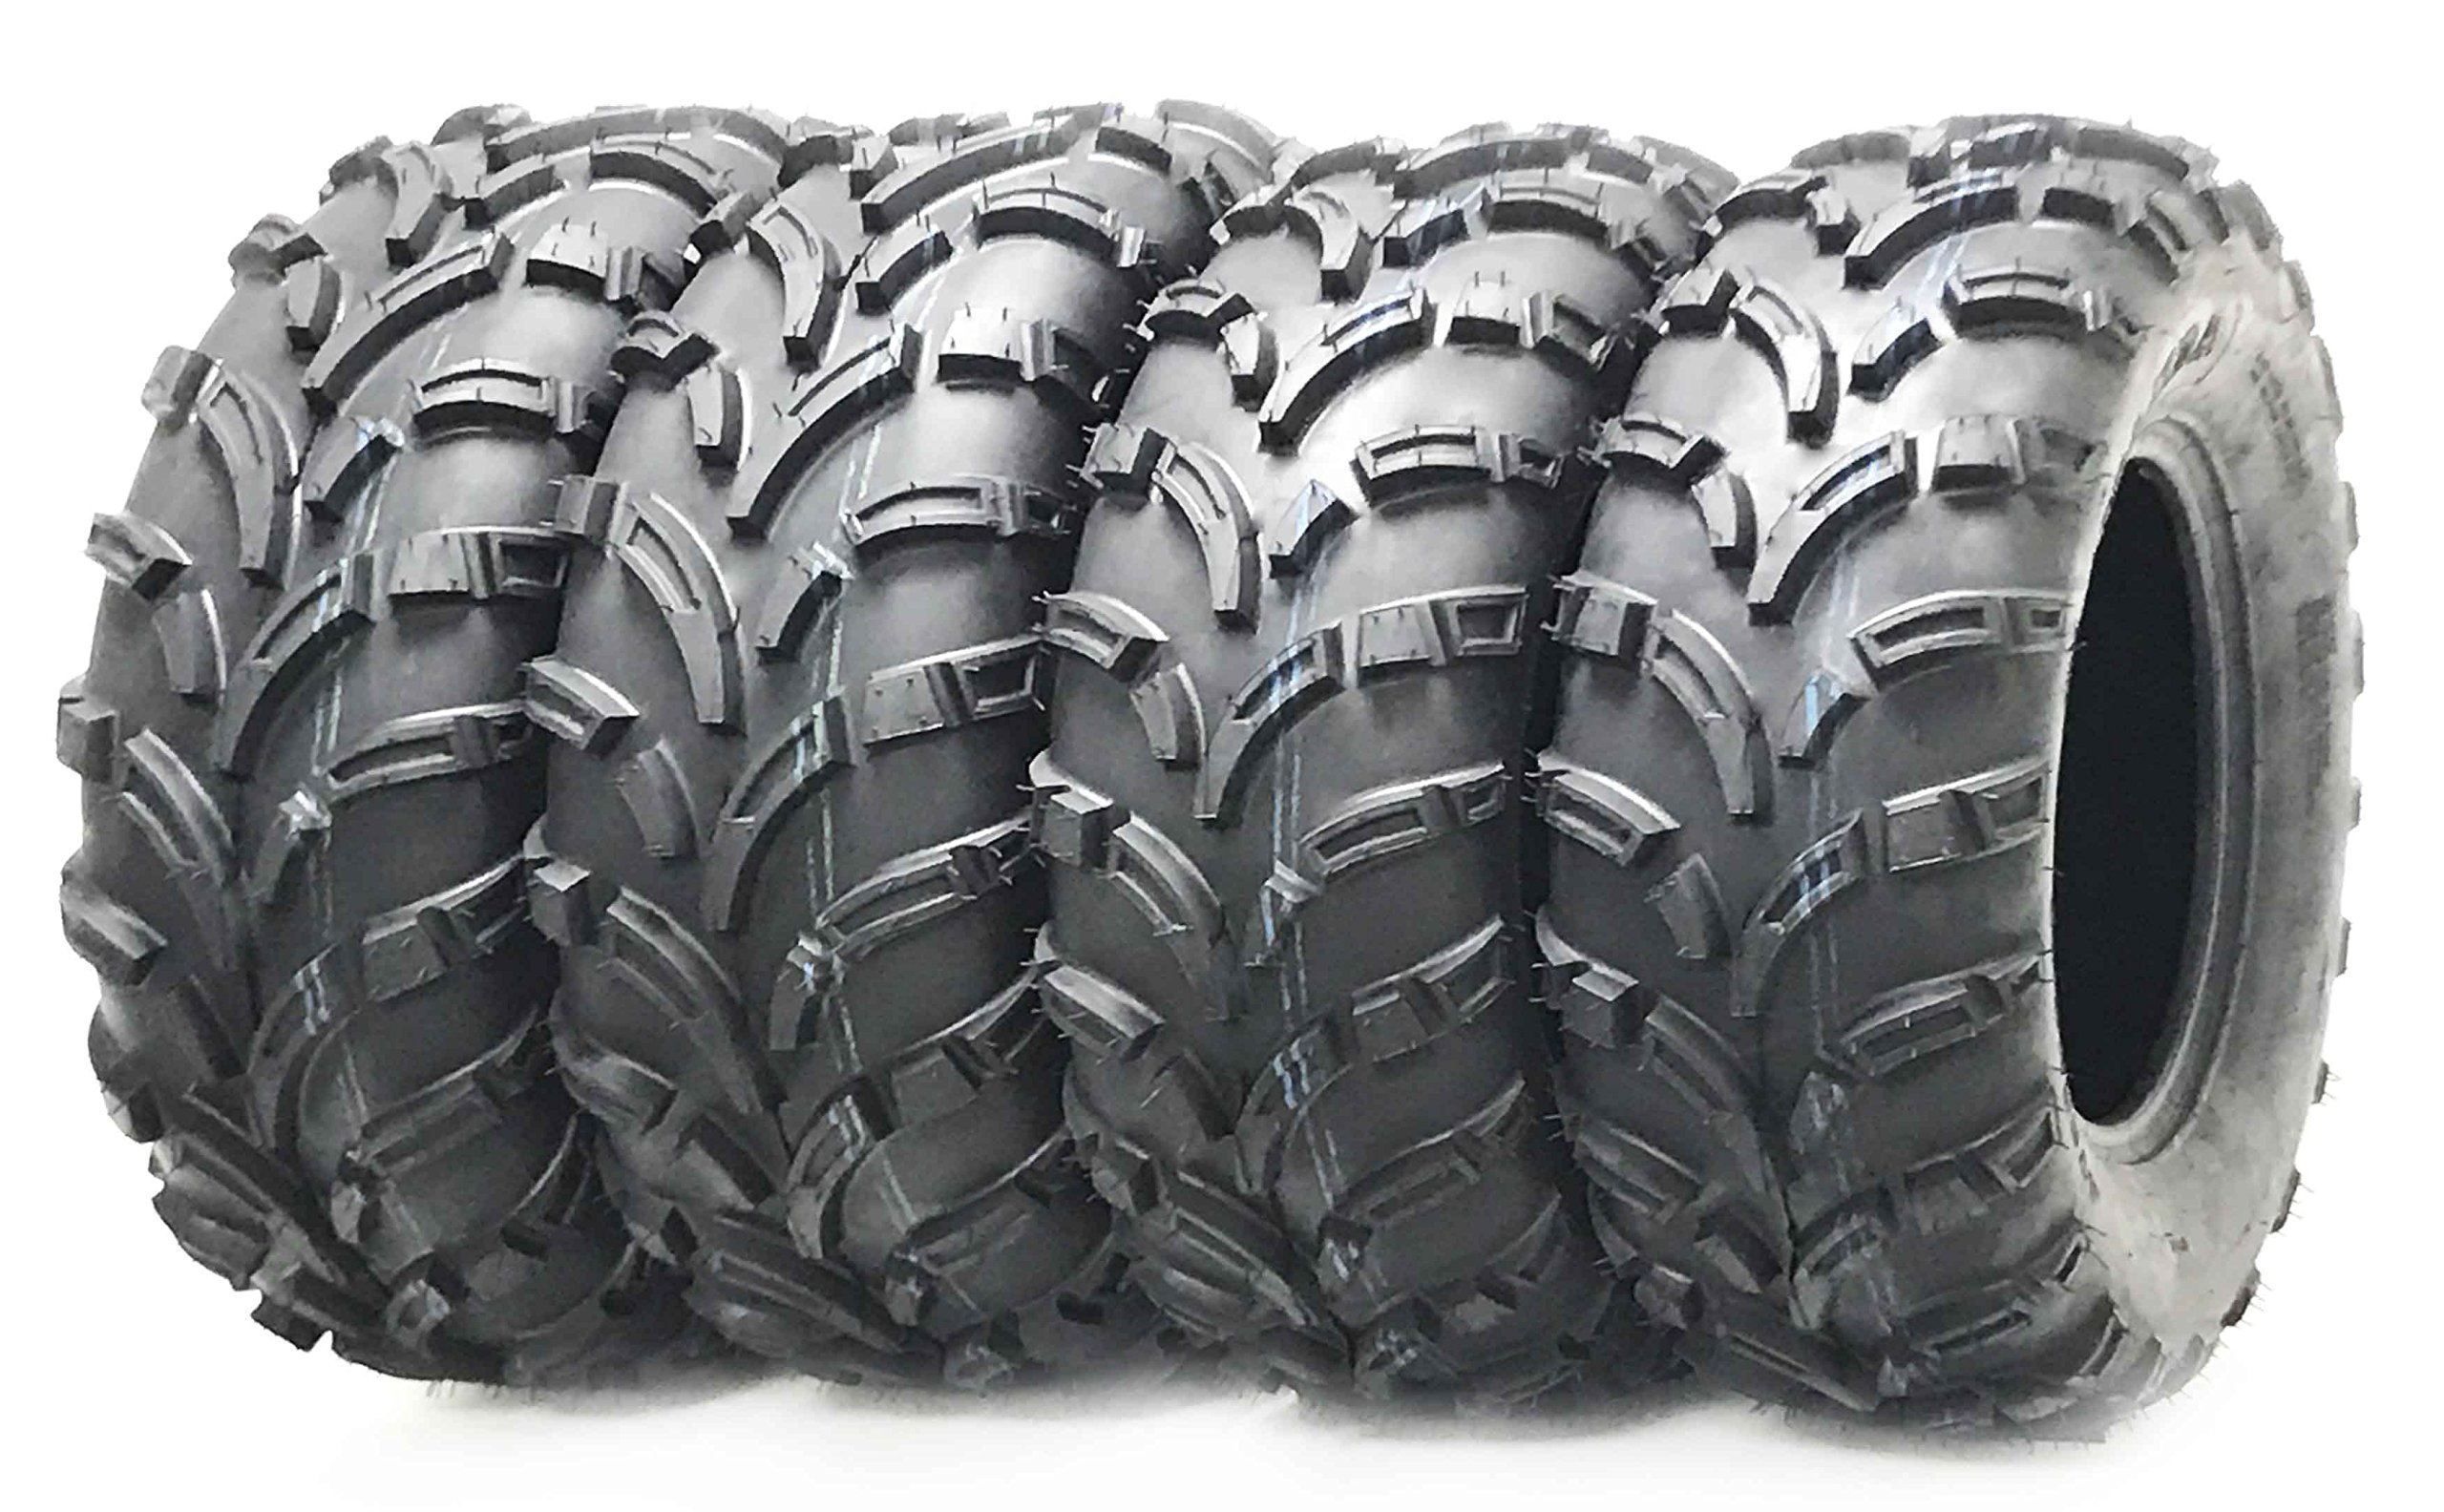 Set of 4 WANDA ATV UTV tires 25×8-12 25X8X12 Front & Rear 6PR P373 …